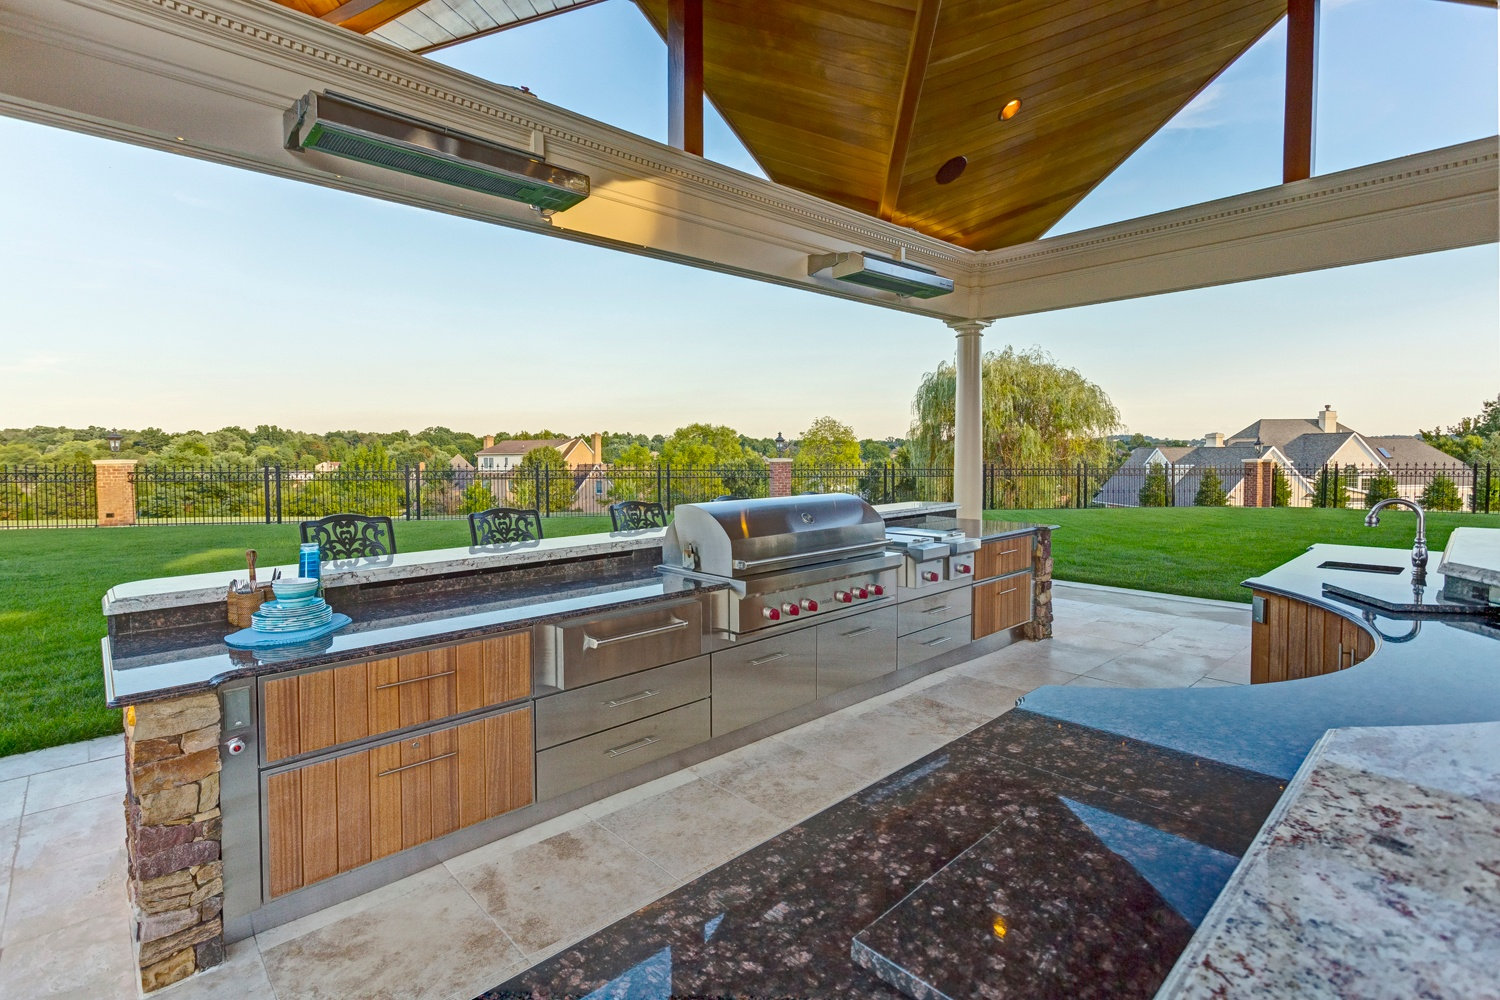 6 Backyard Storage Solutions for Patios, Pools, and Outdoor Kitchens